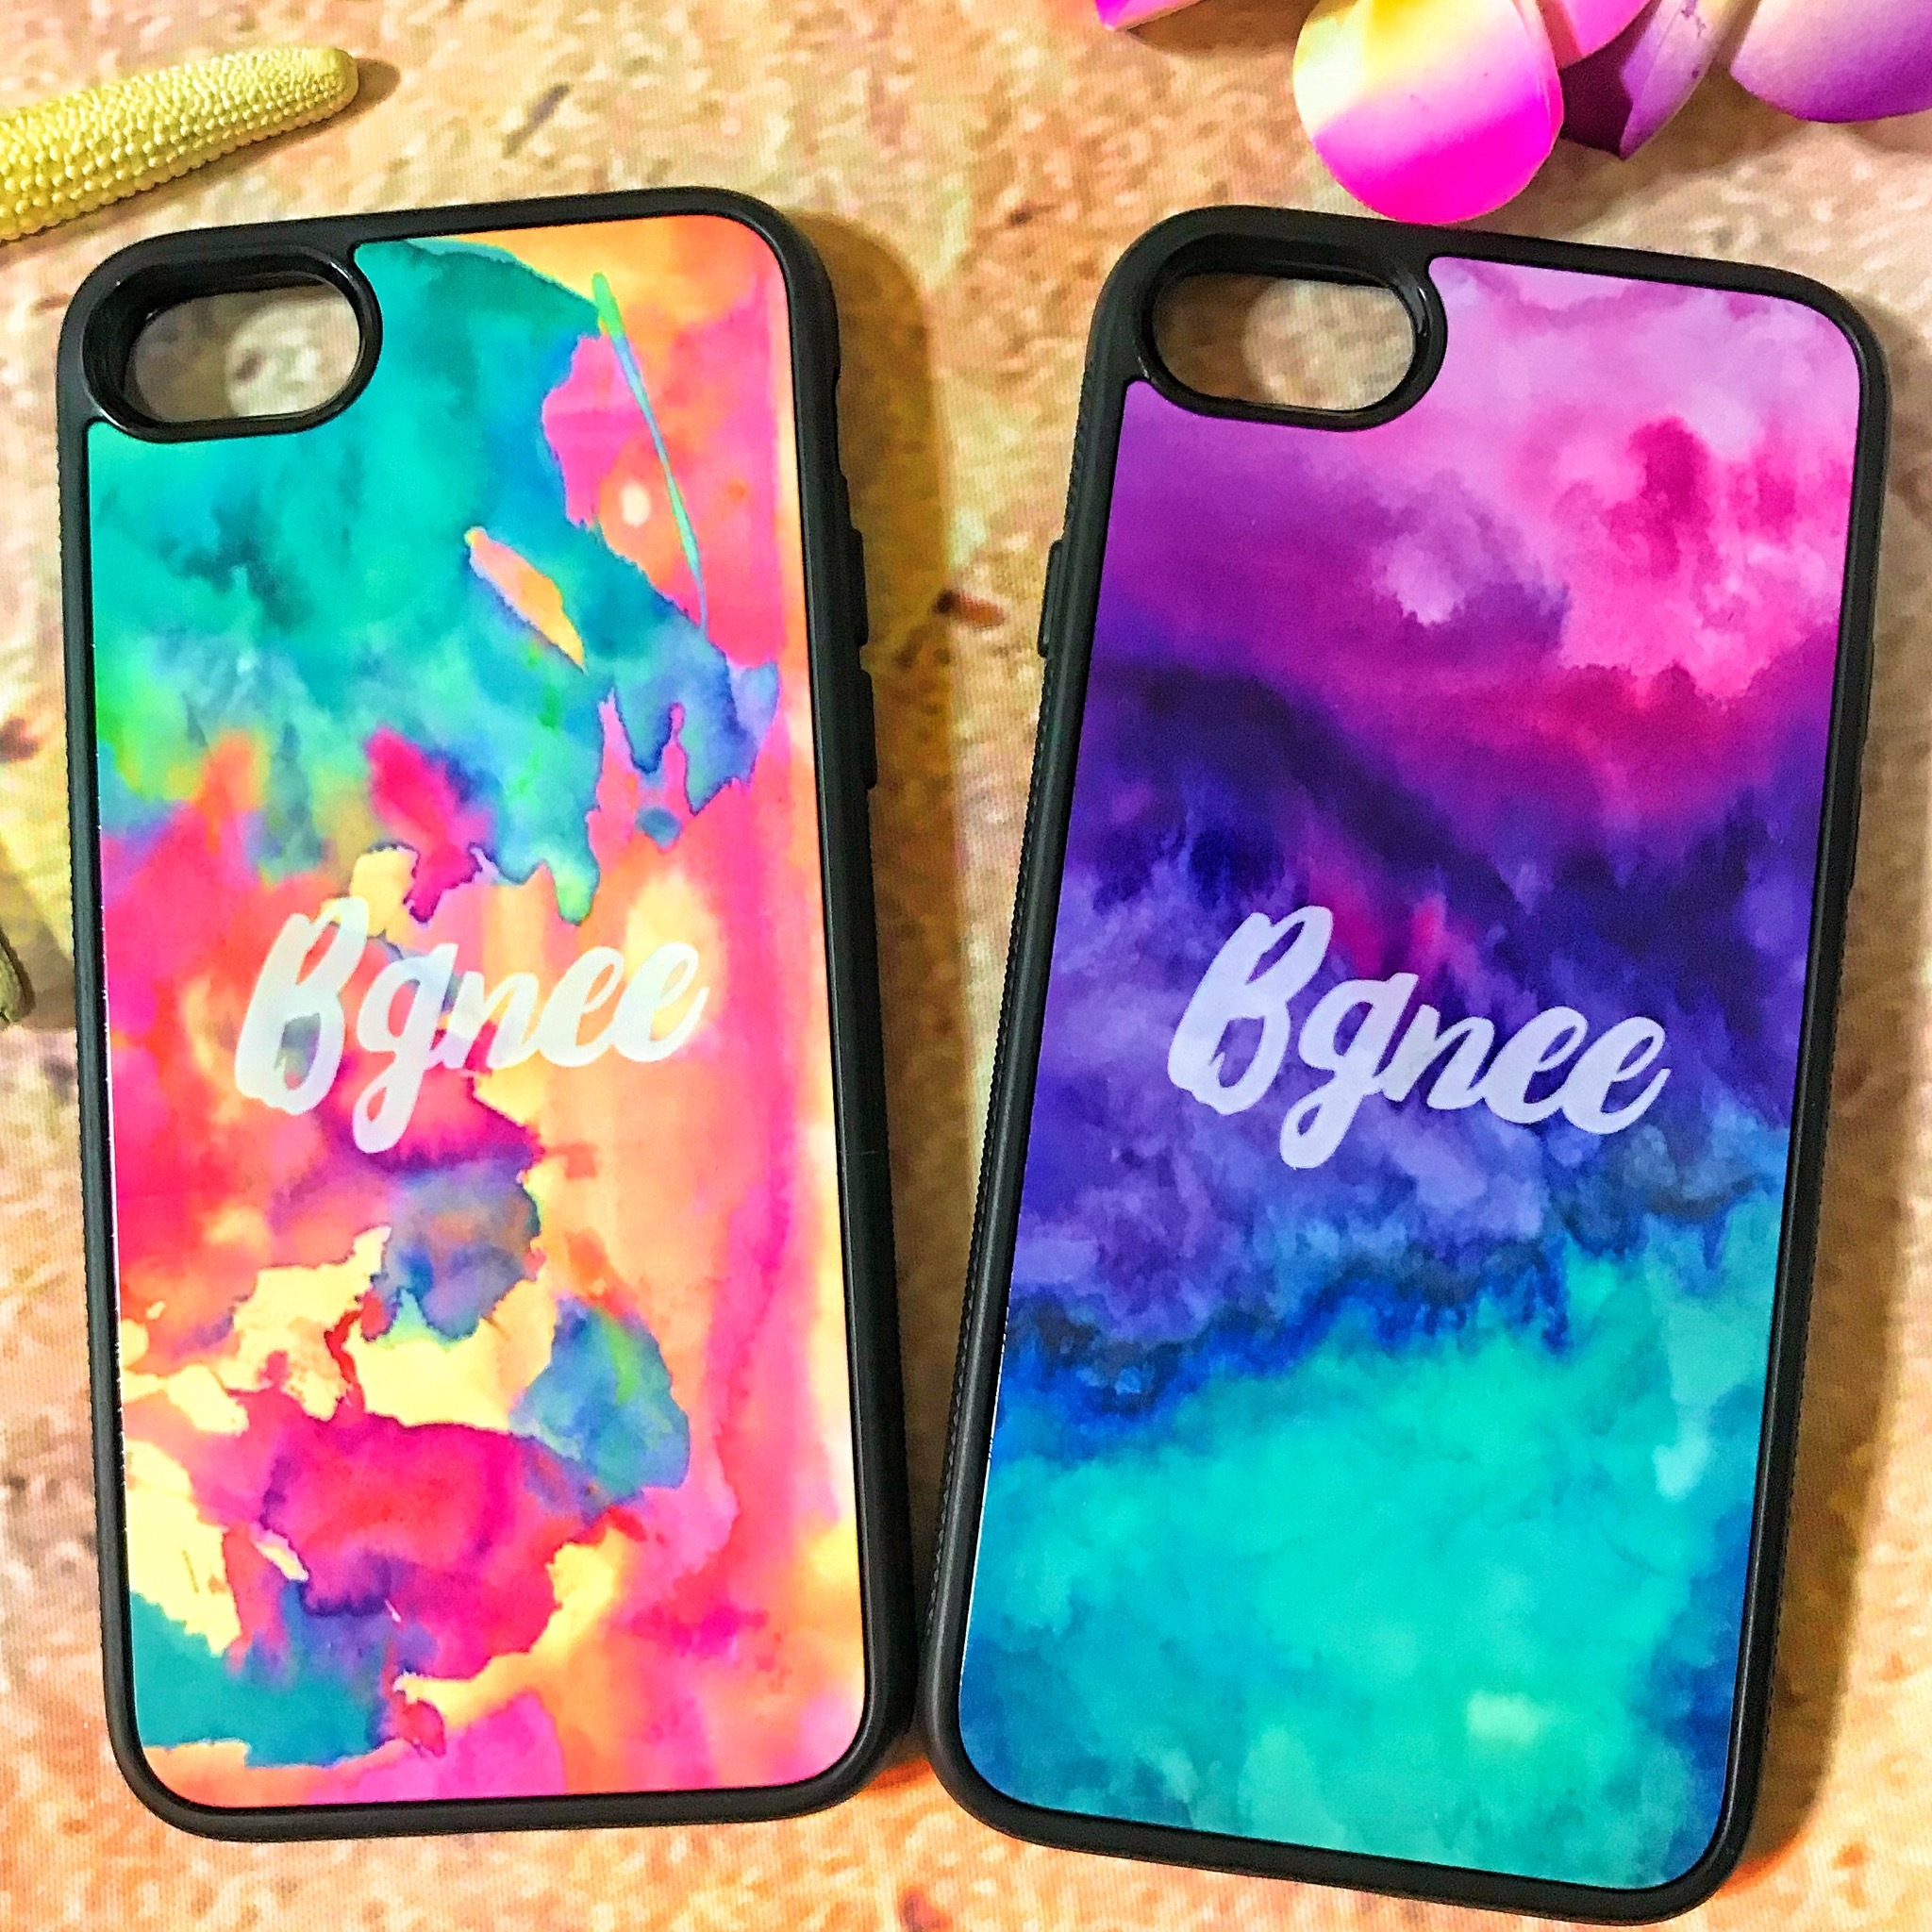 Bgnee iPhone cover case aurora